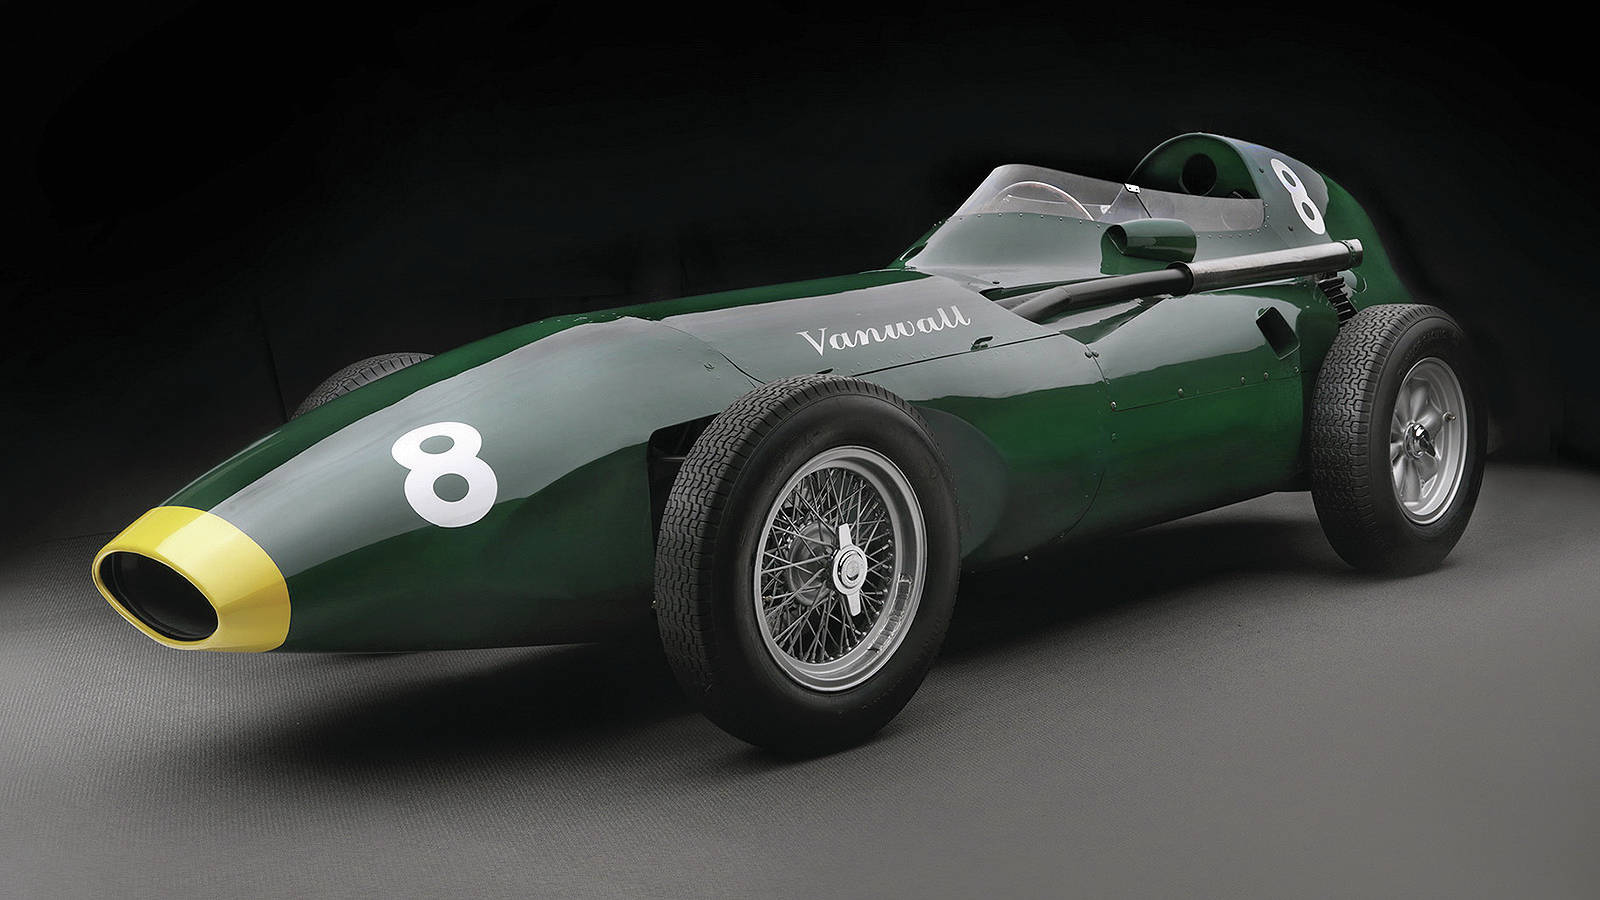 A British company will replicate six Vanwall Formula One cars from the 1950s. PHOTO: VANWALL